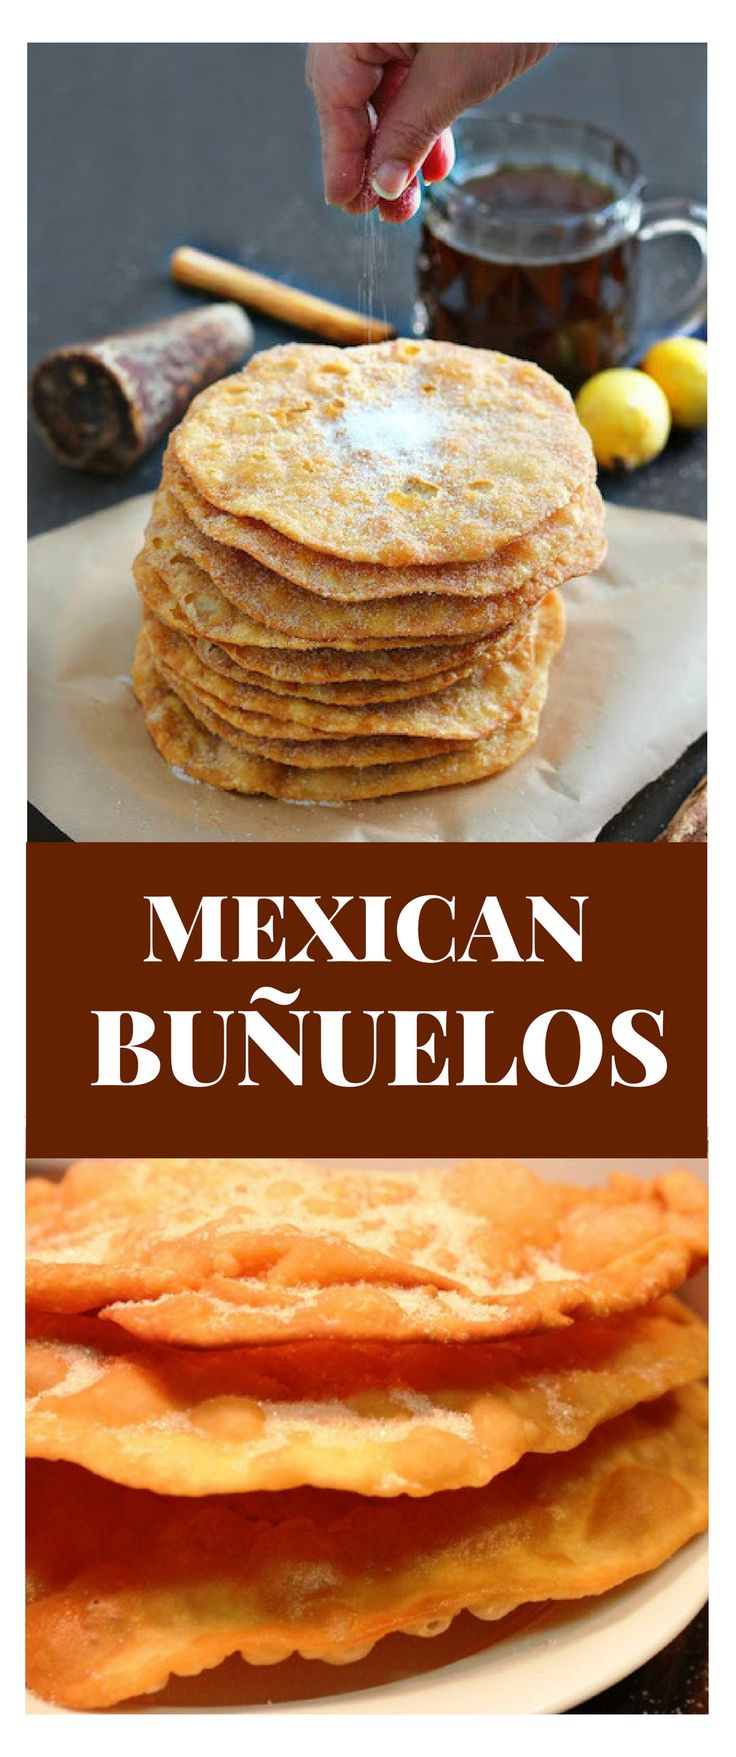 201 best mexican christmas food recipe images on pinterest mexican these light crispy and sweet round disc are sprinkled with sugar or bathed in piloncillo syrup find this pin and more on mexican christmas food recipe forumfinder Images